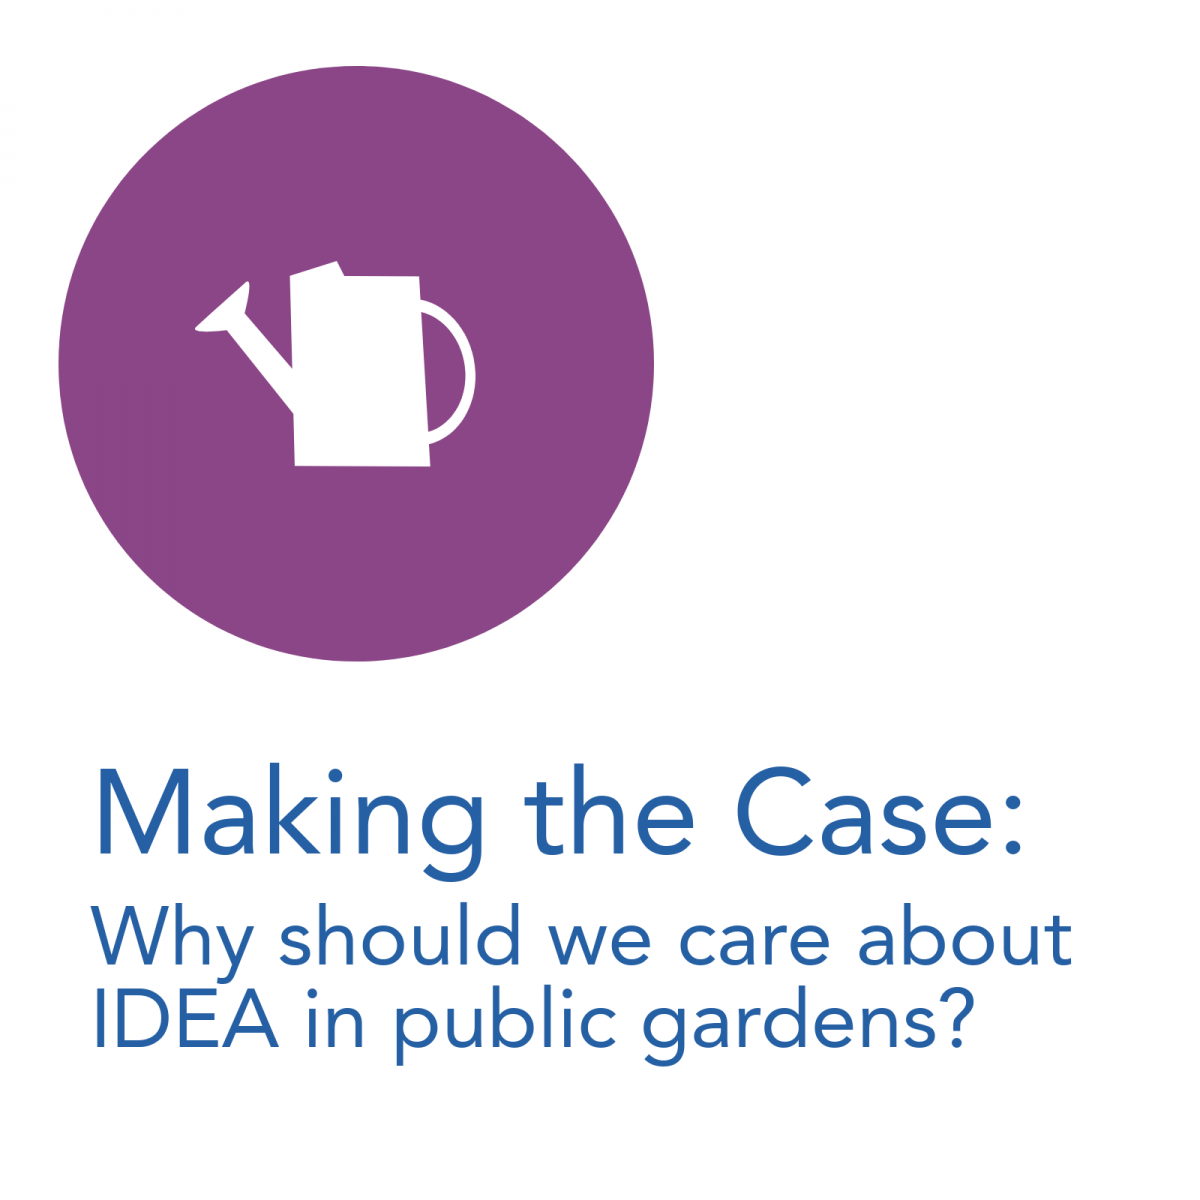 why should we care about DEI in public gardens? Click for page details